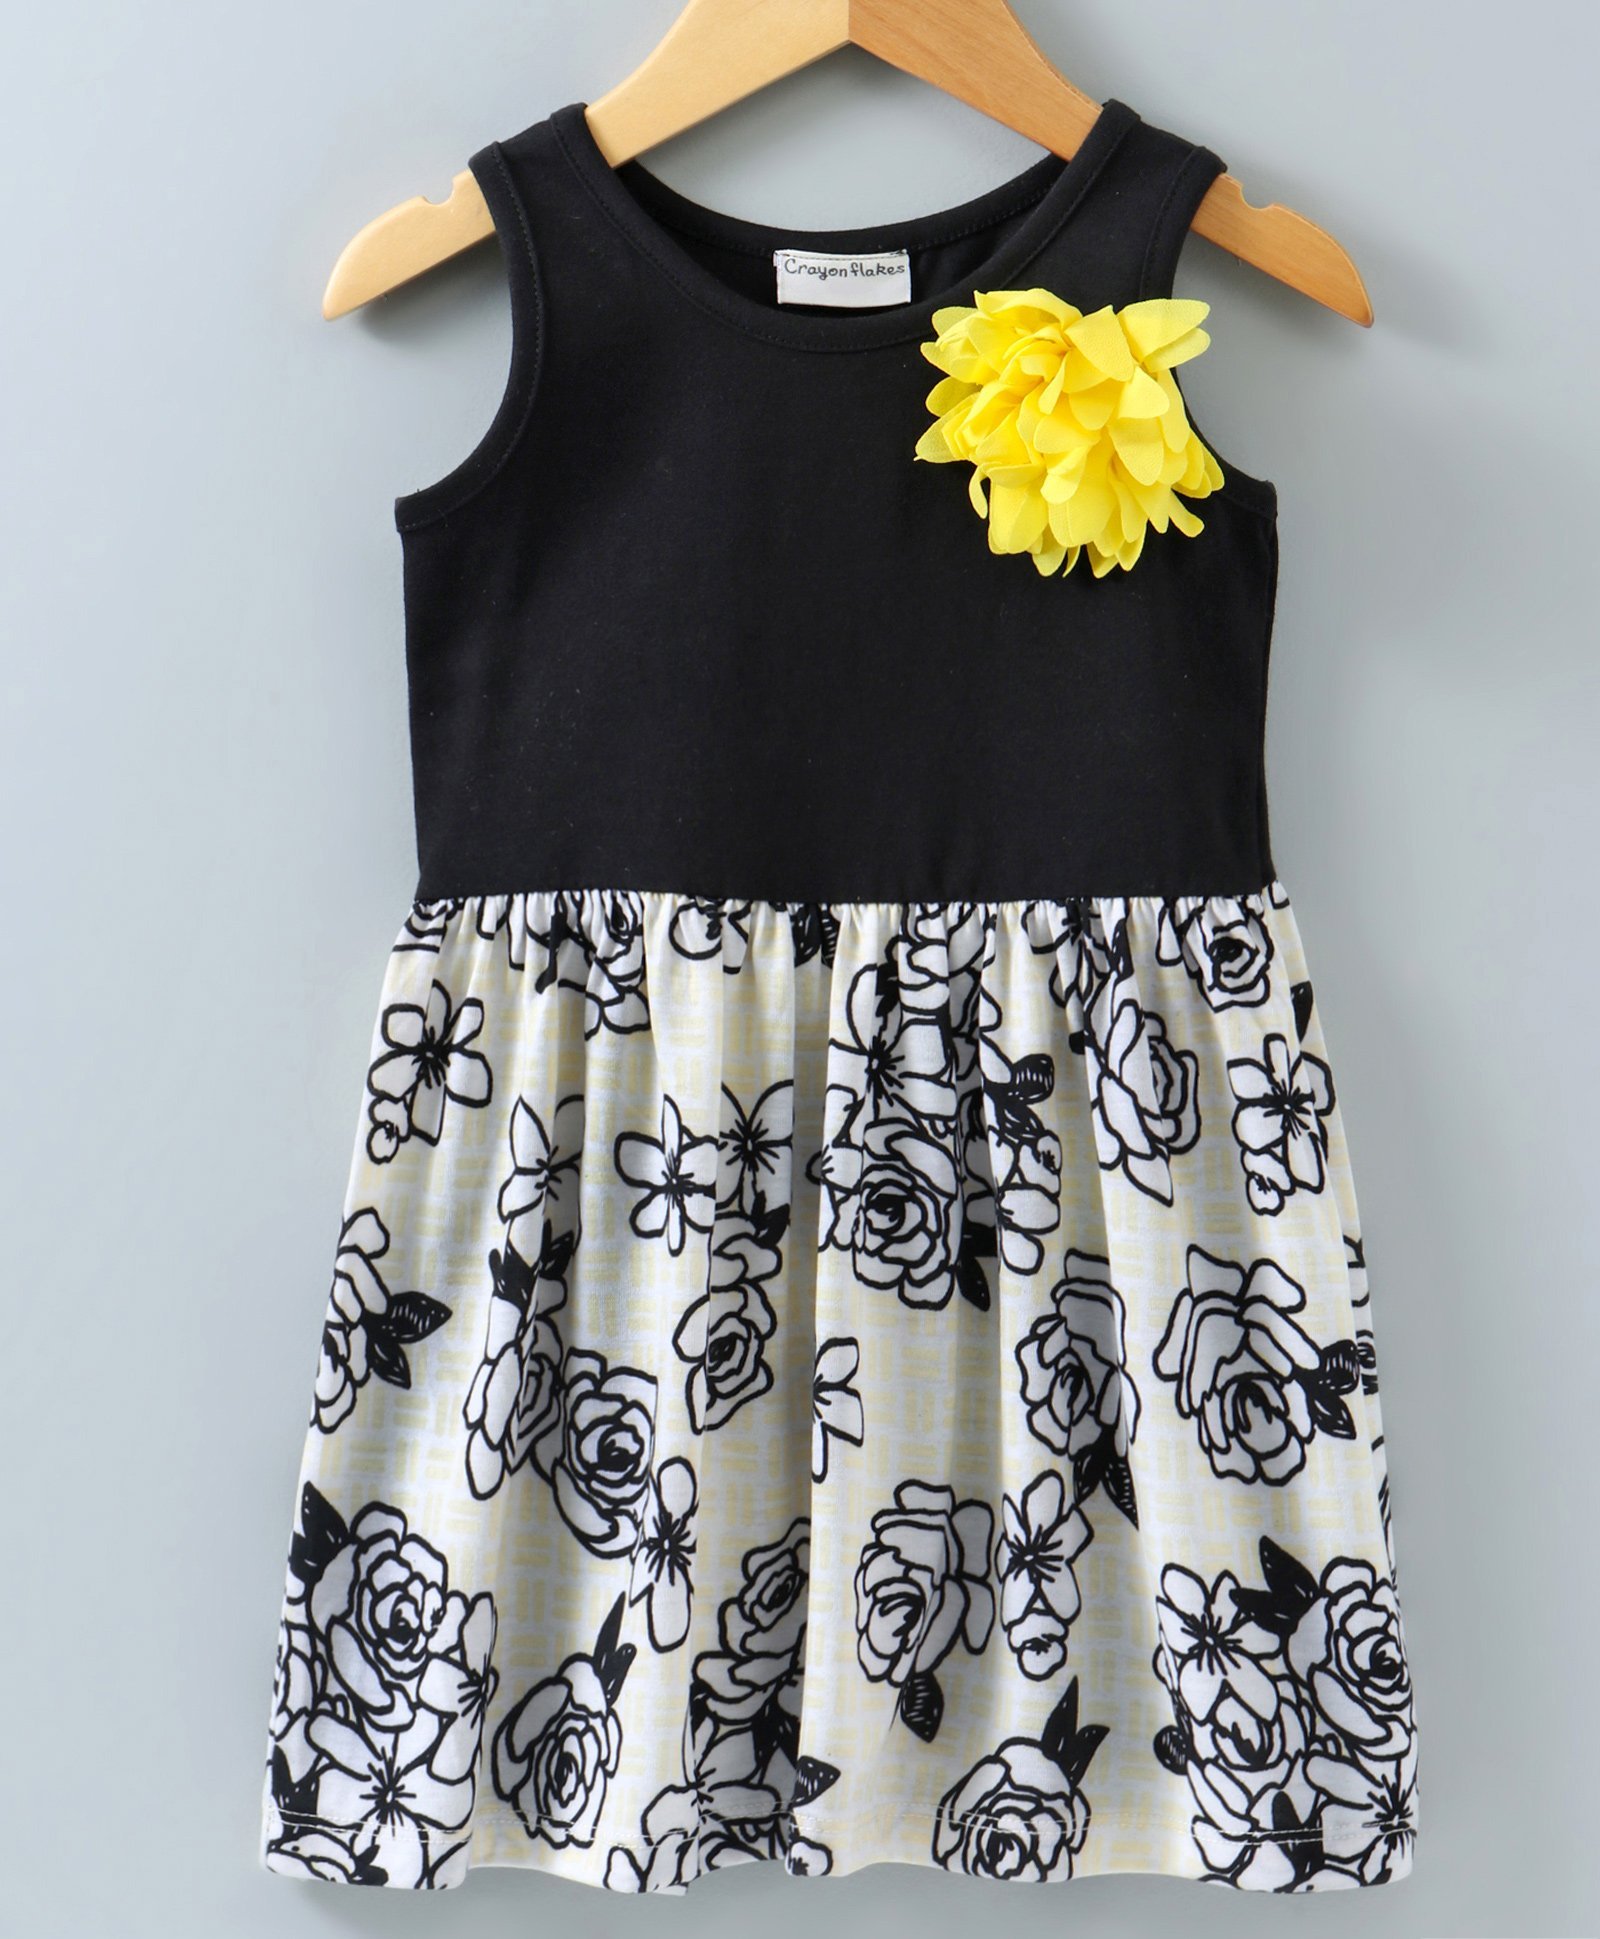 f9b1f548d9d30 Buy Crayonflakes Flower Print Sleeveless Dress Black & White for Girls (2-3  Years) Online in India, Shop at FirstCry.com - 2786981